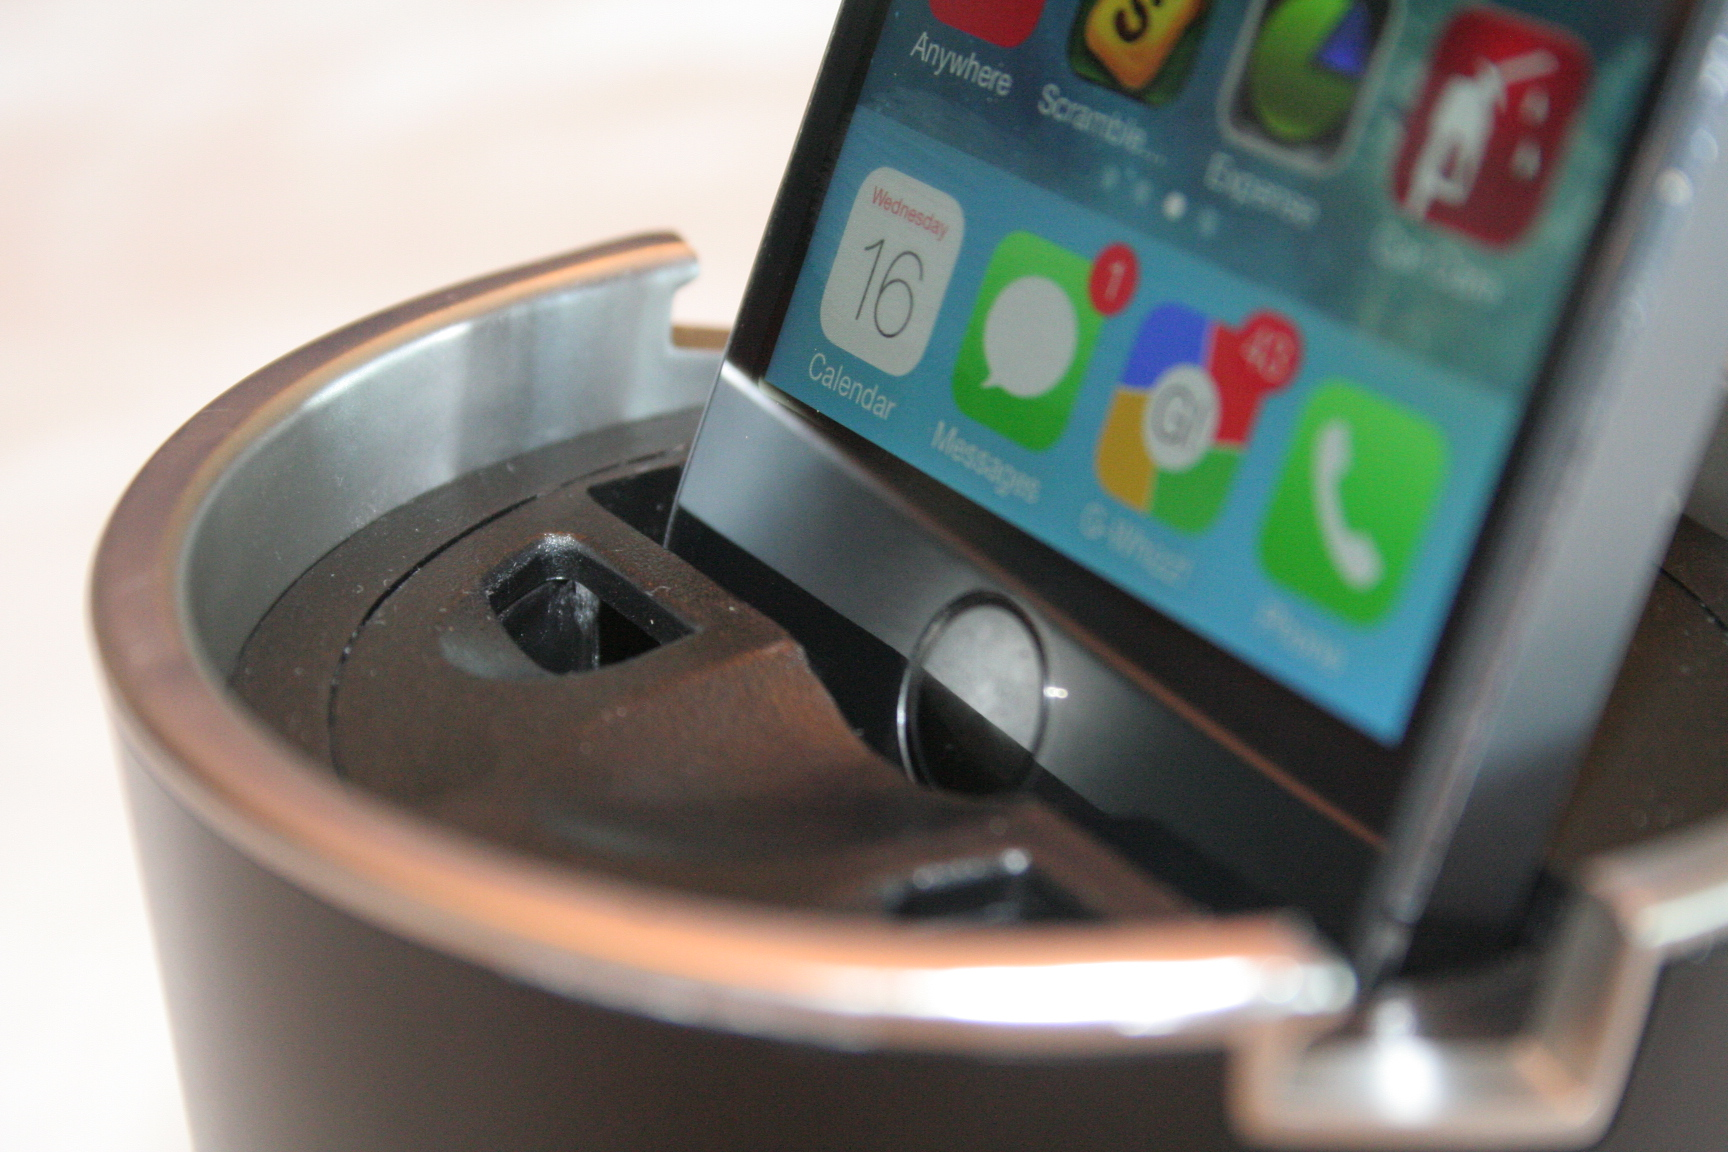 Custom Car Docks Offers Safety And Convenience To Iphone